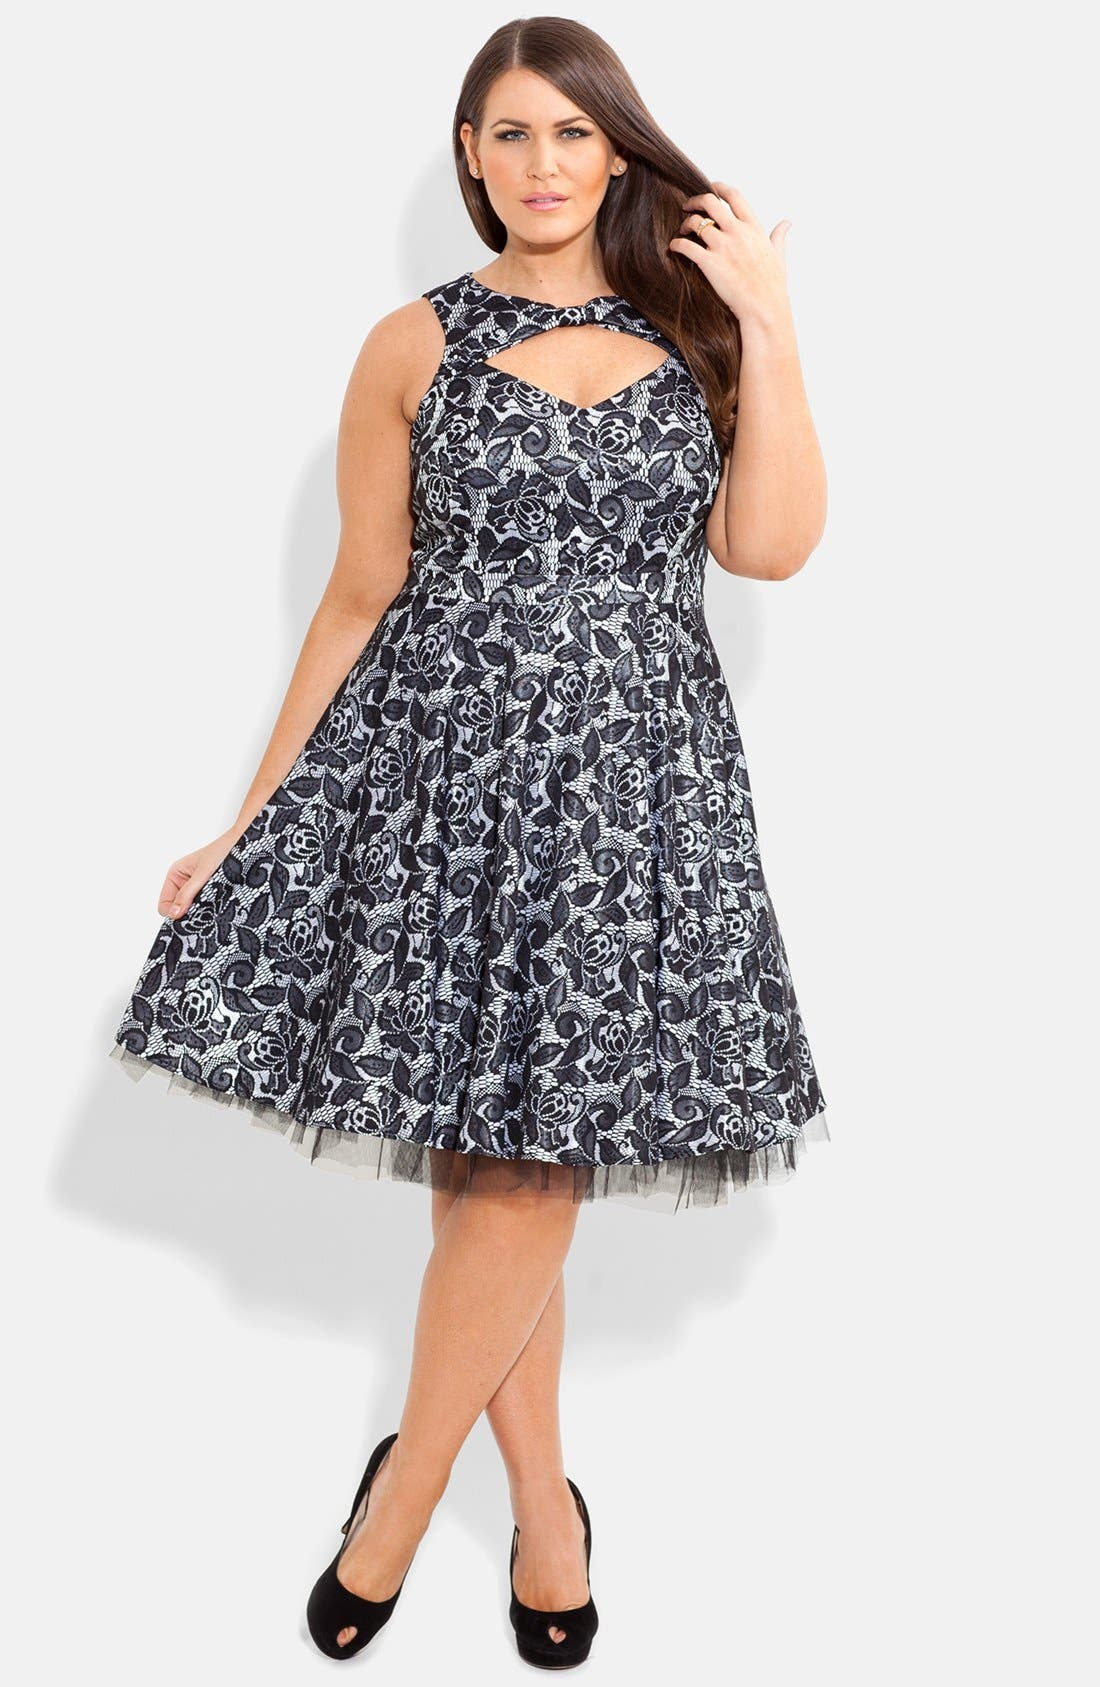 Alternate Image 1 Selected - City Chic Bonded Lace Fit & Flare Dress (Plus Size)